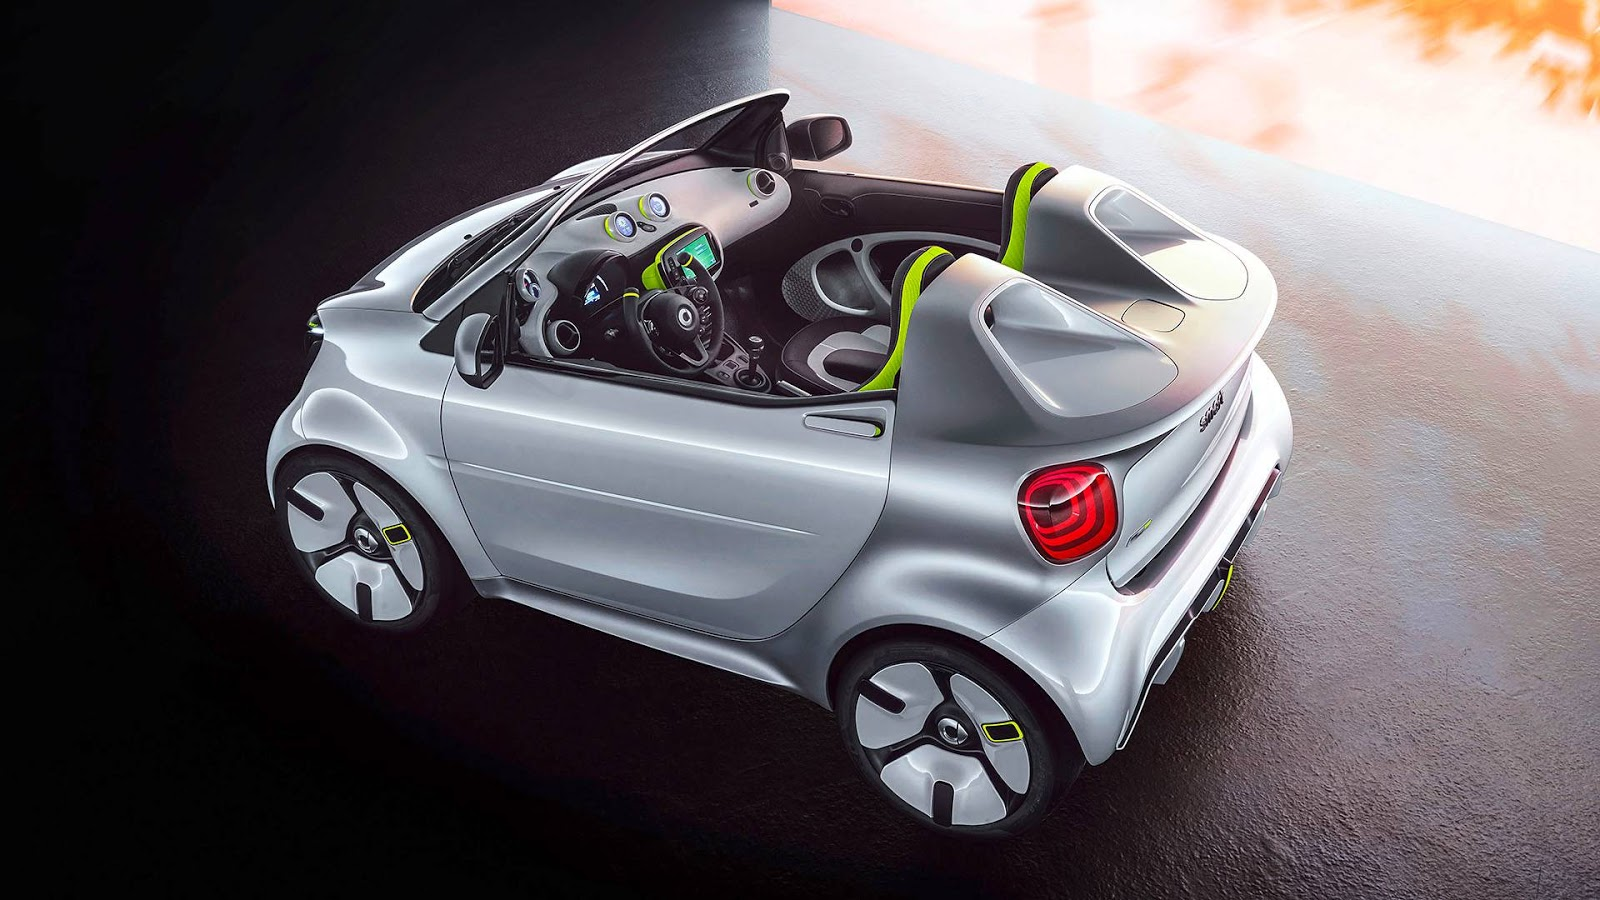 Motor 1 Has An Article On It Indicates Is A Concept Car They Have Some Great Photos More Like Drawings Conceptual Art Of